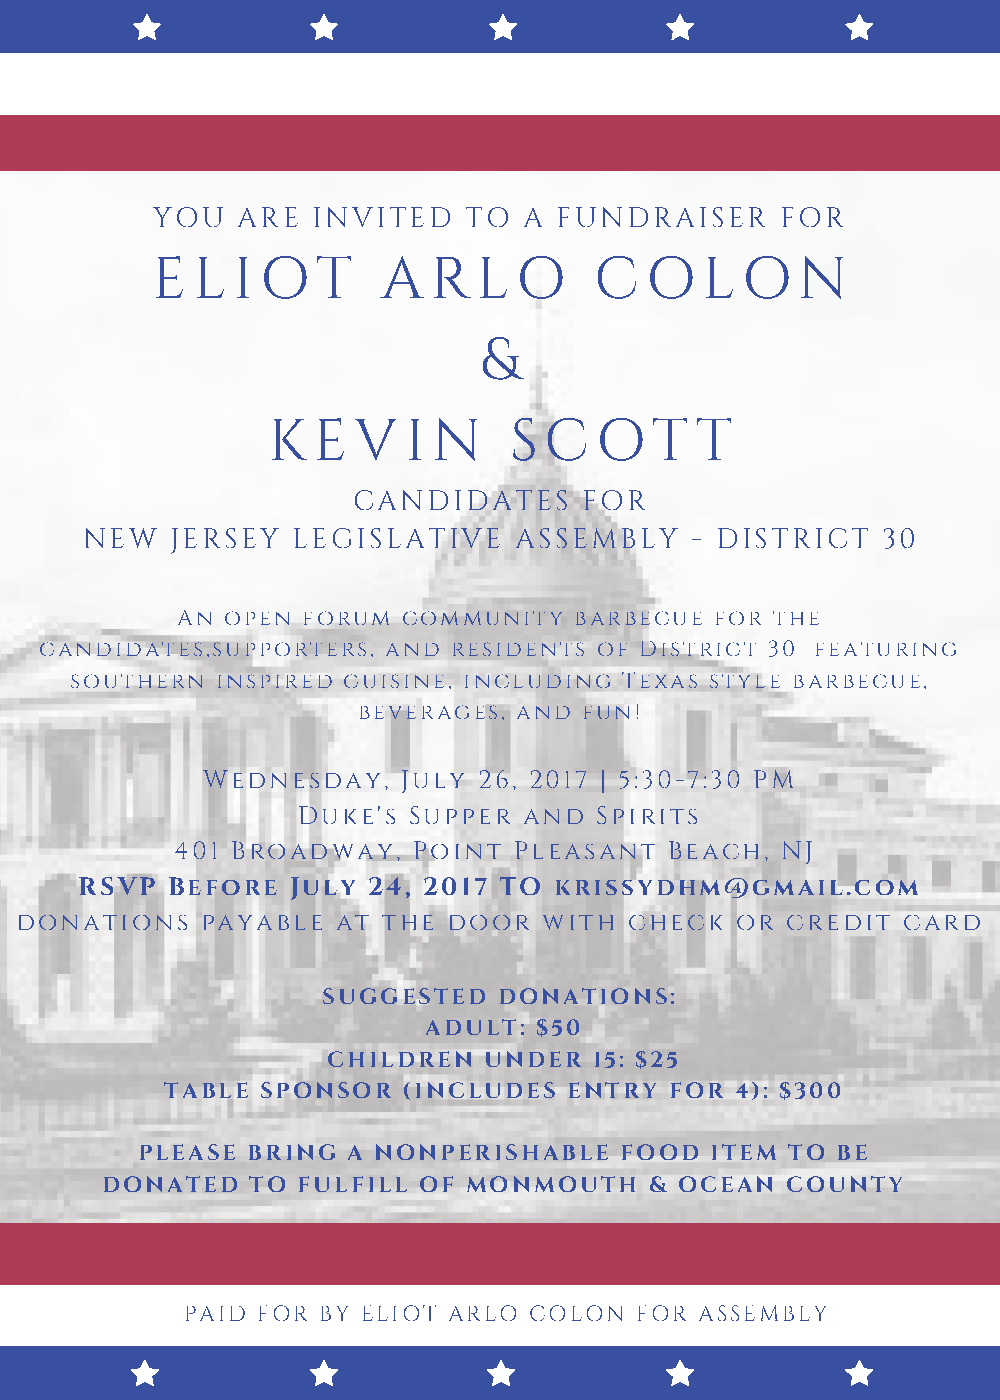 Eliot_Arlo_Colon_Kevin_Scott_Fundraiser.png